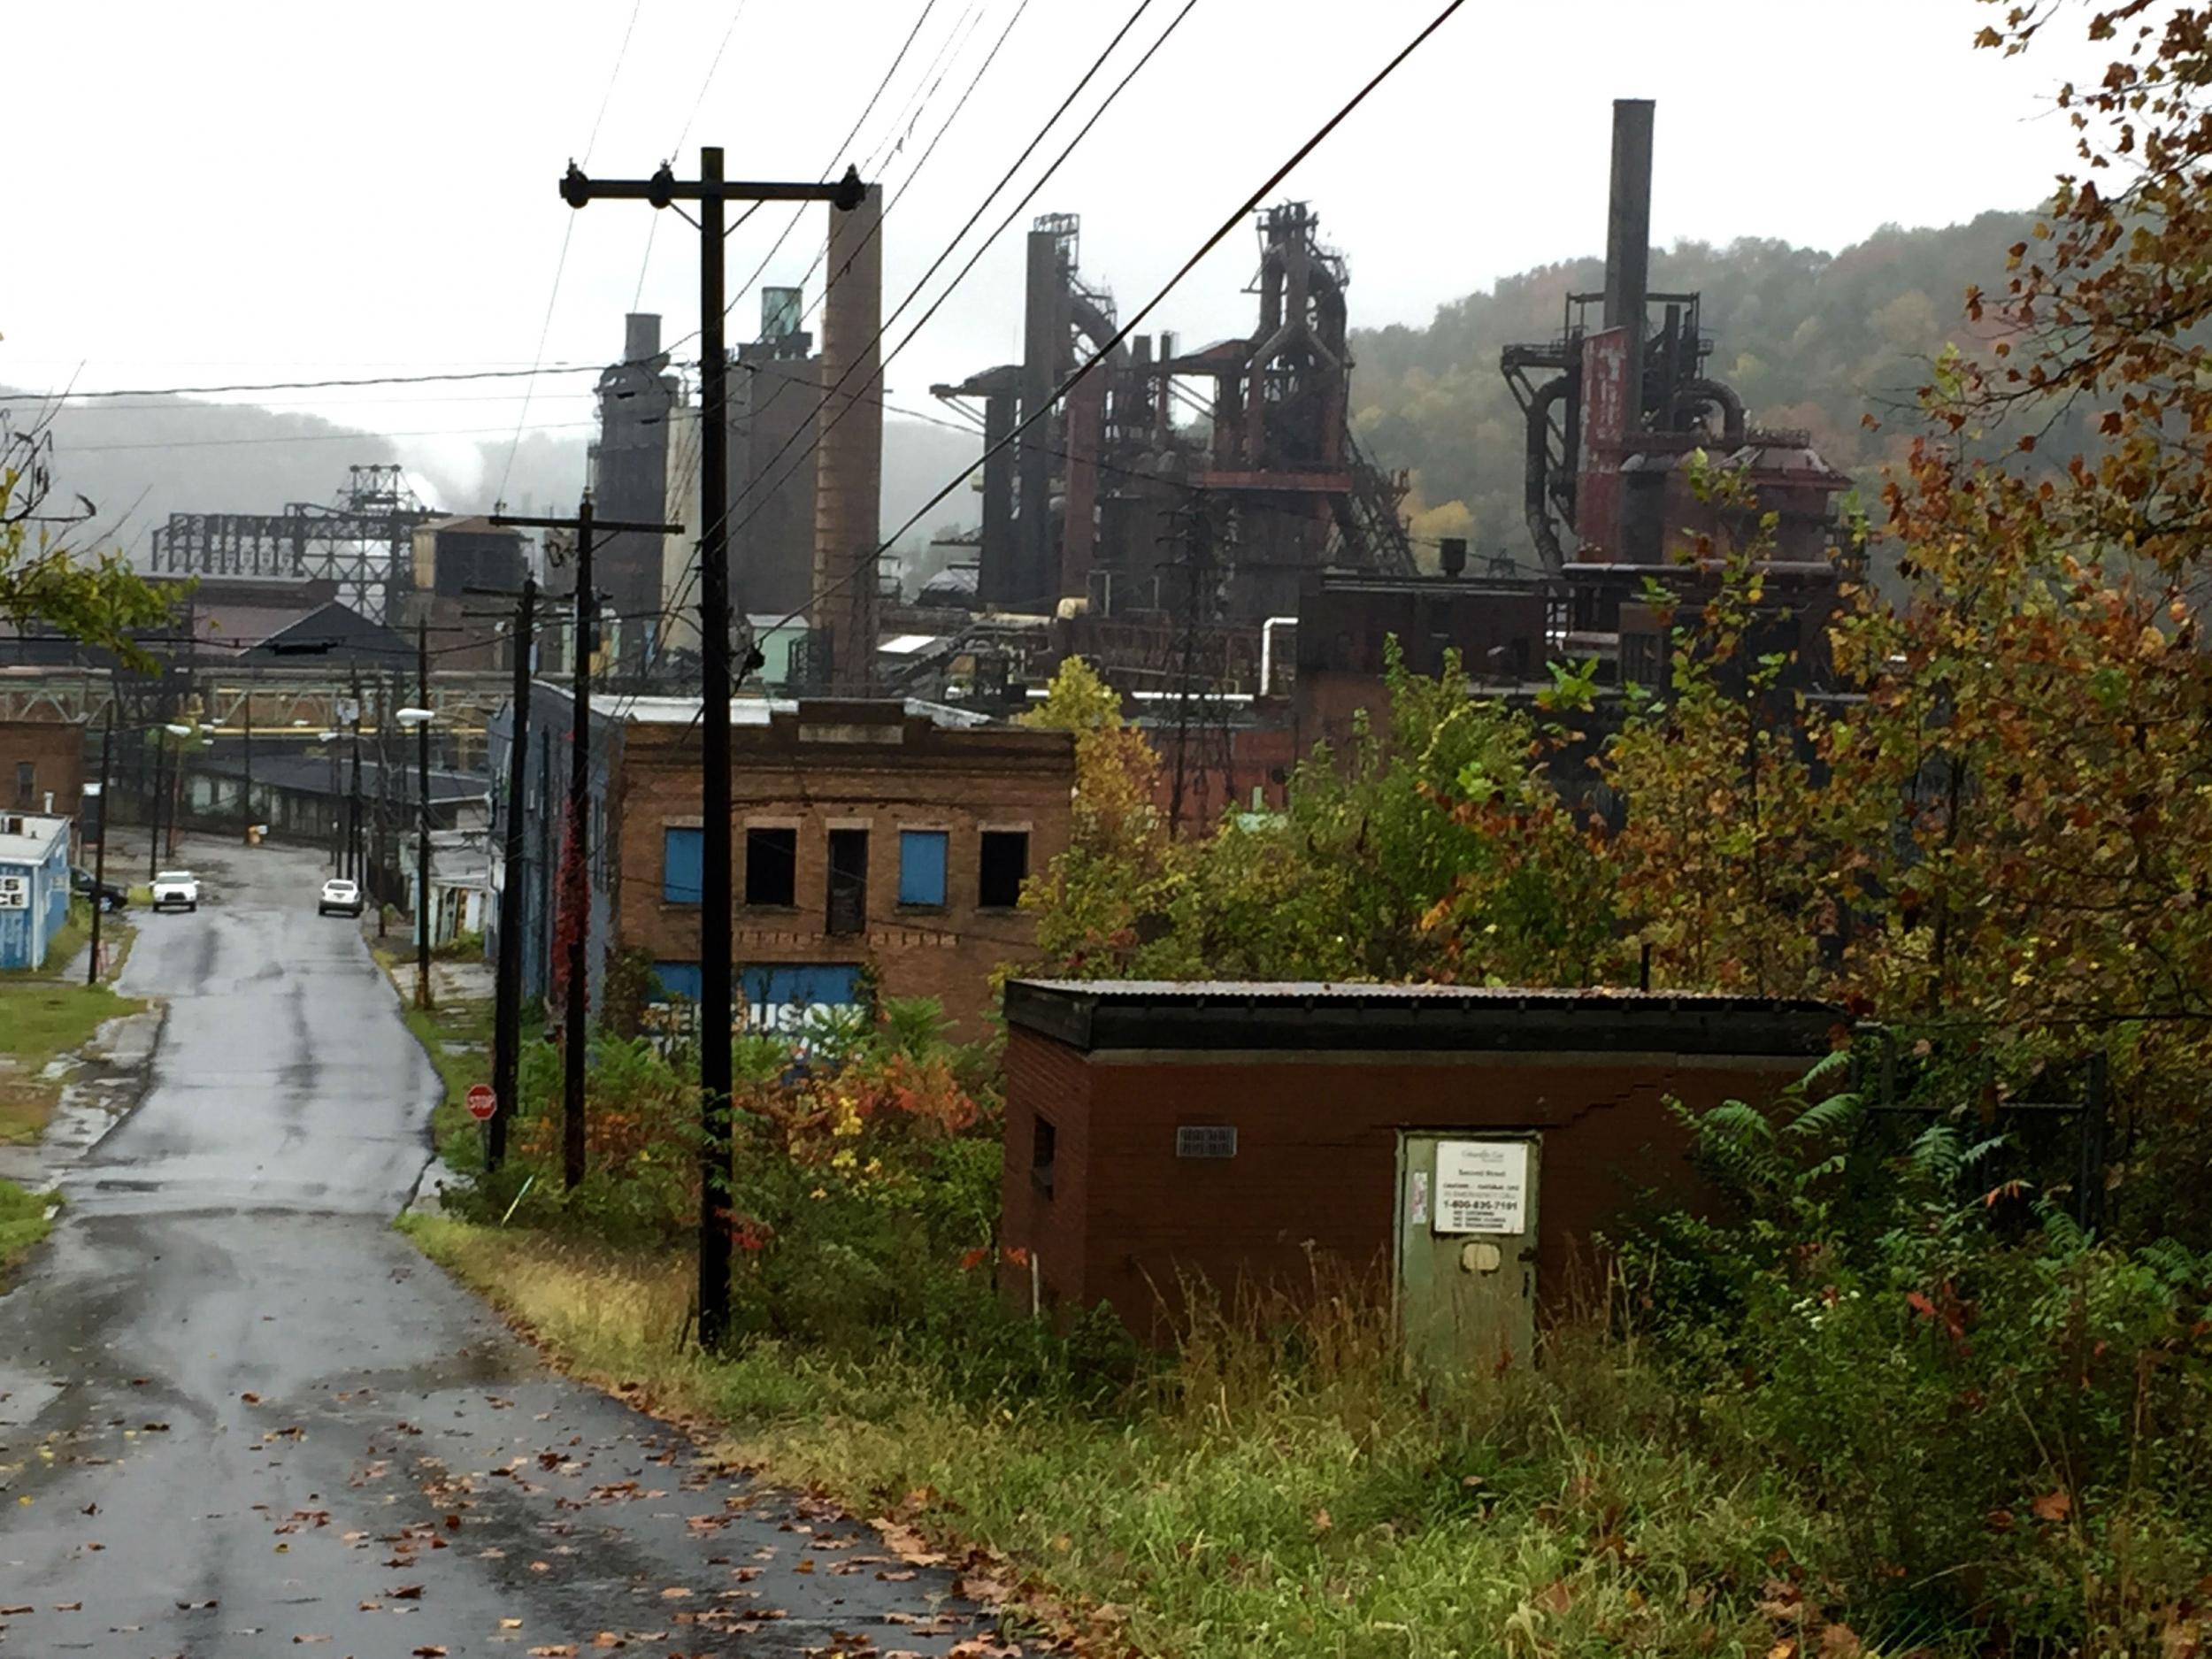 Inside the West Virginia steel town destroyed by Nafta – where 94